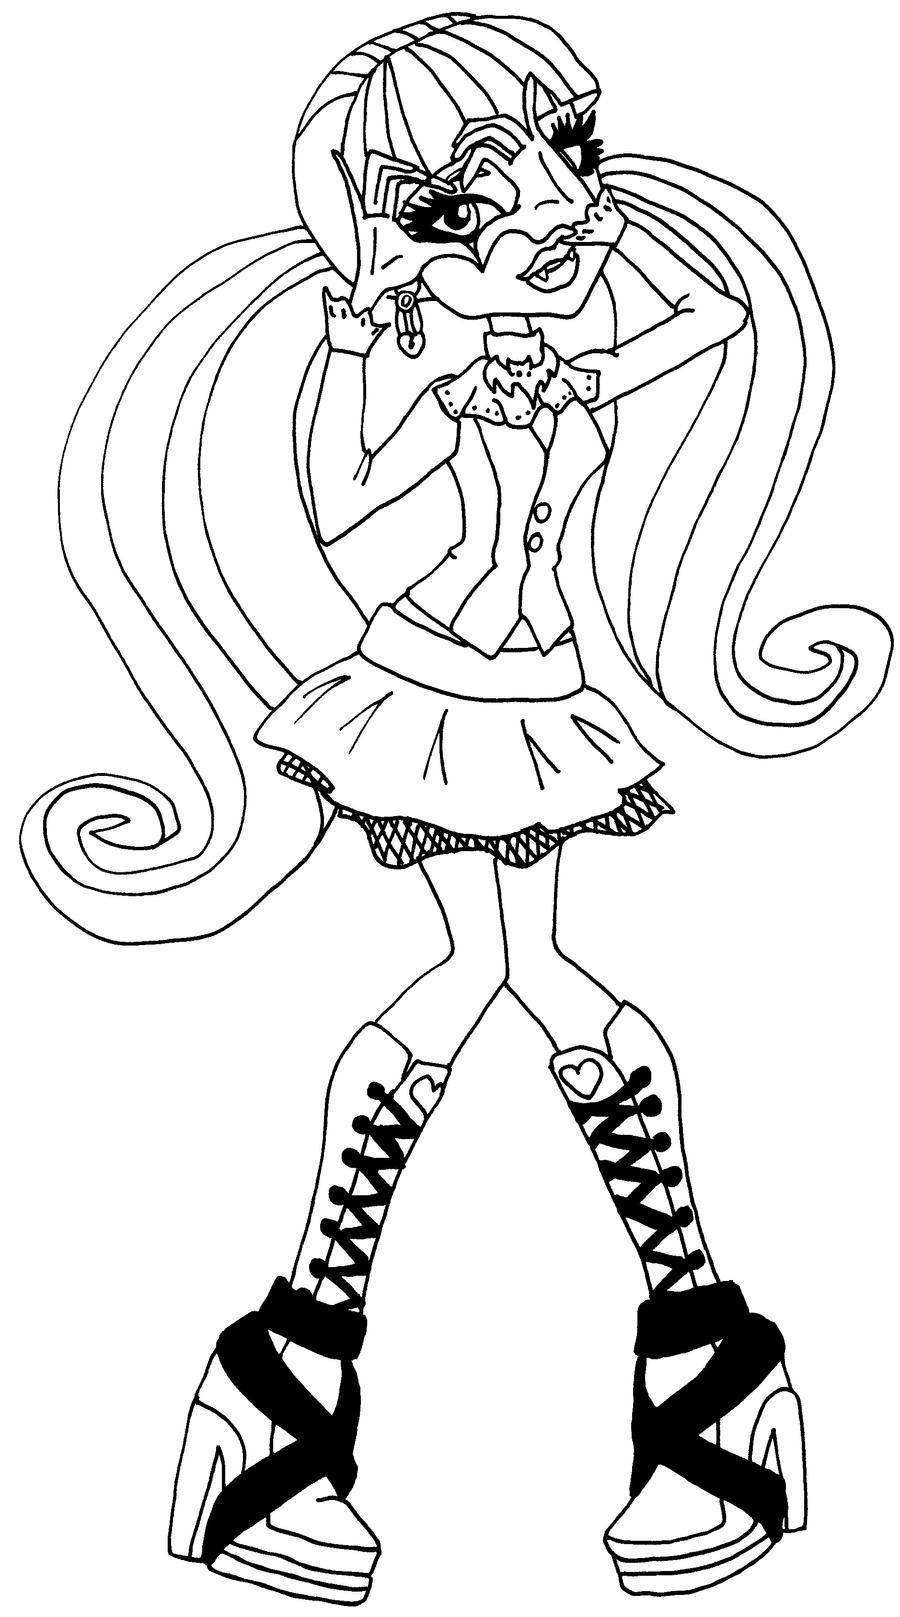 monster high drawing pictures pin by shaina kannady on monster high ever after high pictures monster high drawing